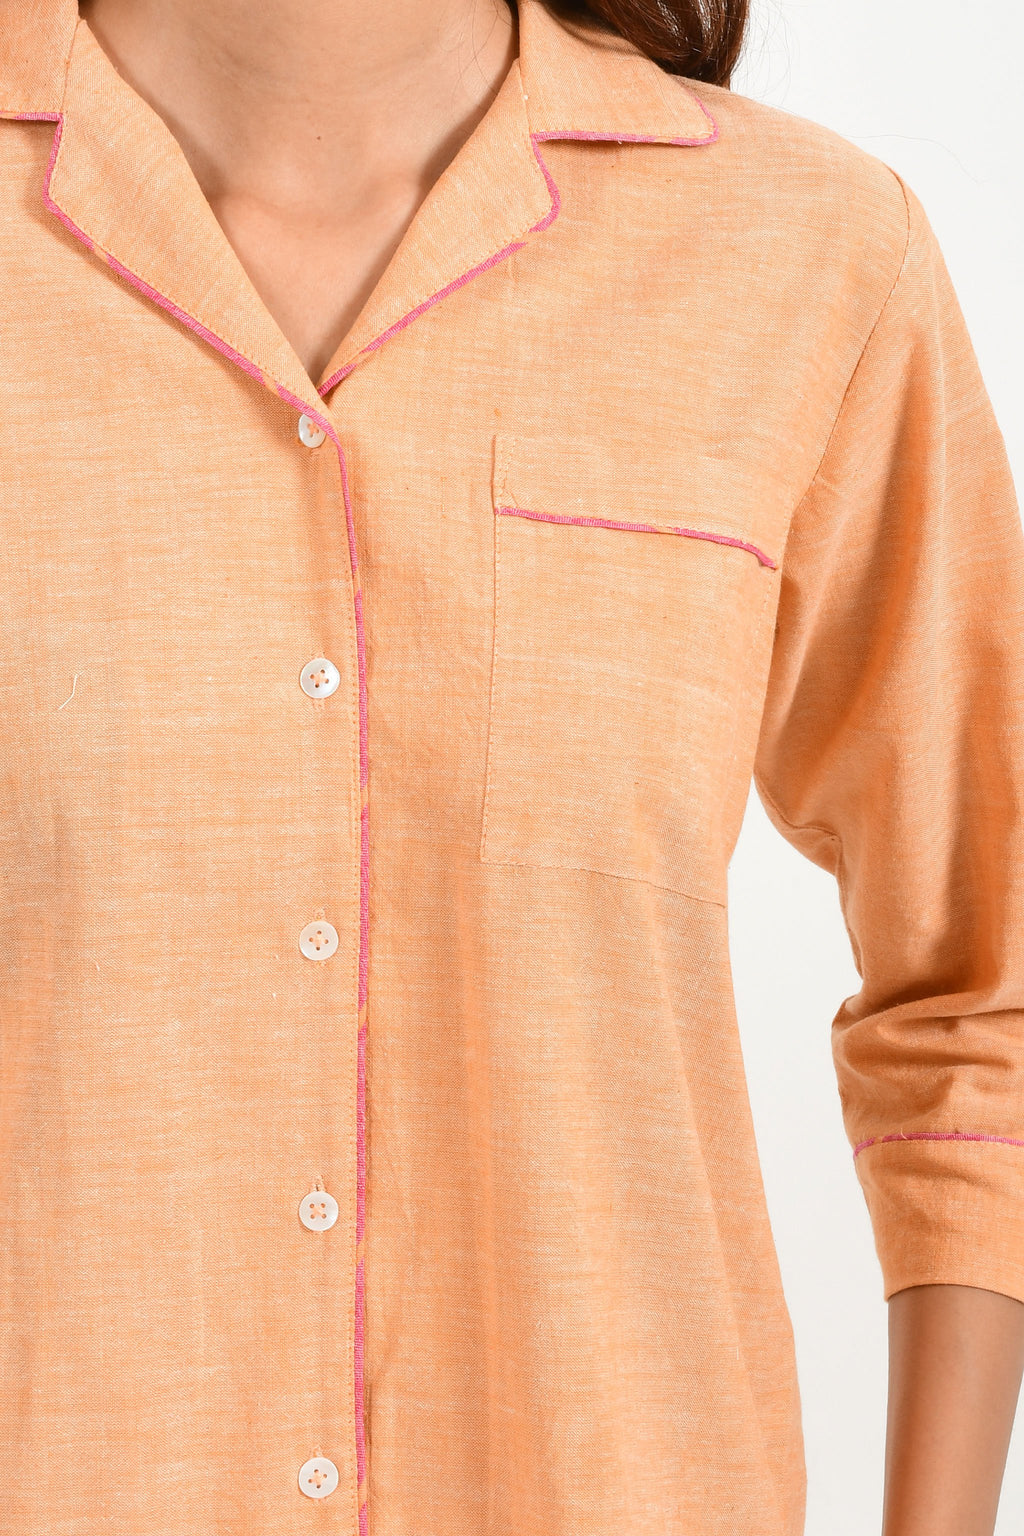 Close-Up of an Indian female womenswear fashion model in azo-free dyed handspun and handwoven khadi cotton nightwear pyjama & shirt in orange chambray by Cotton Rack.